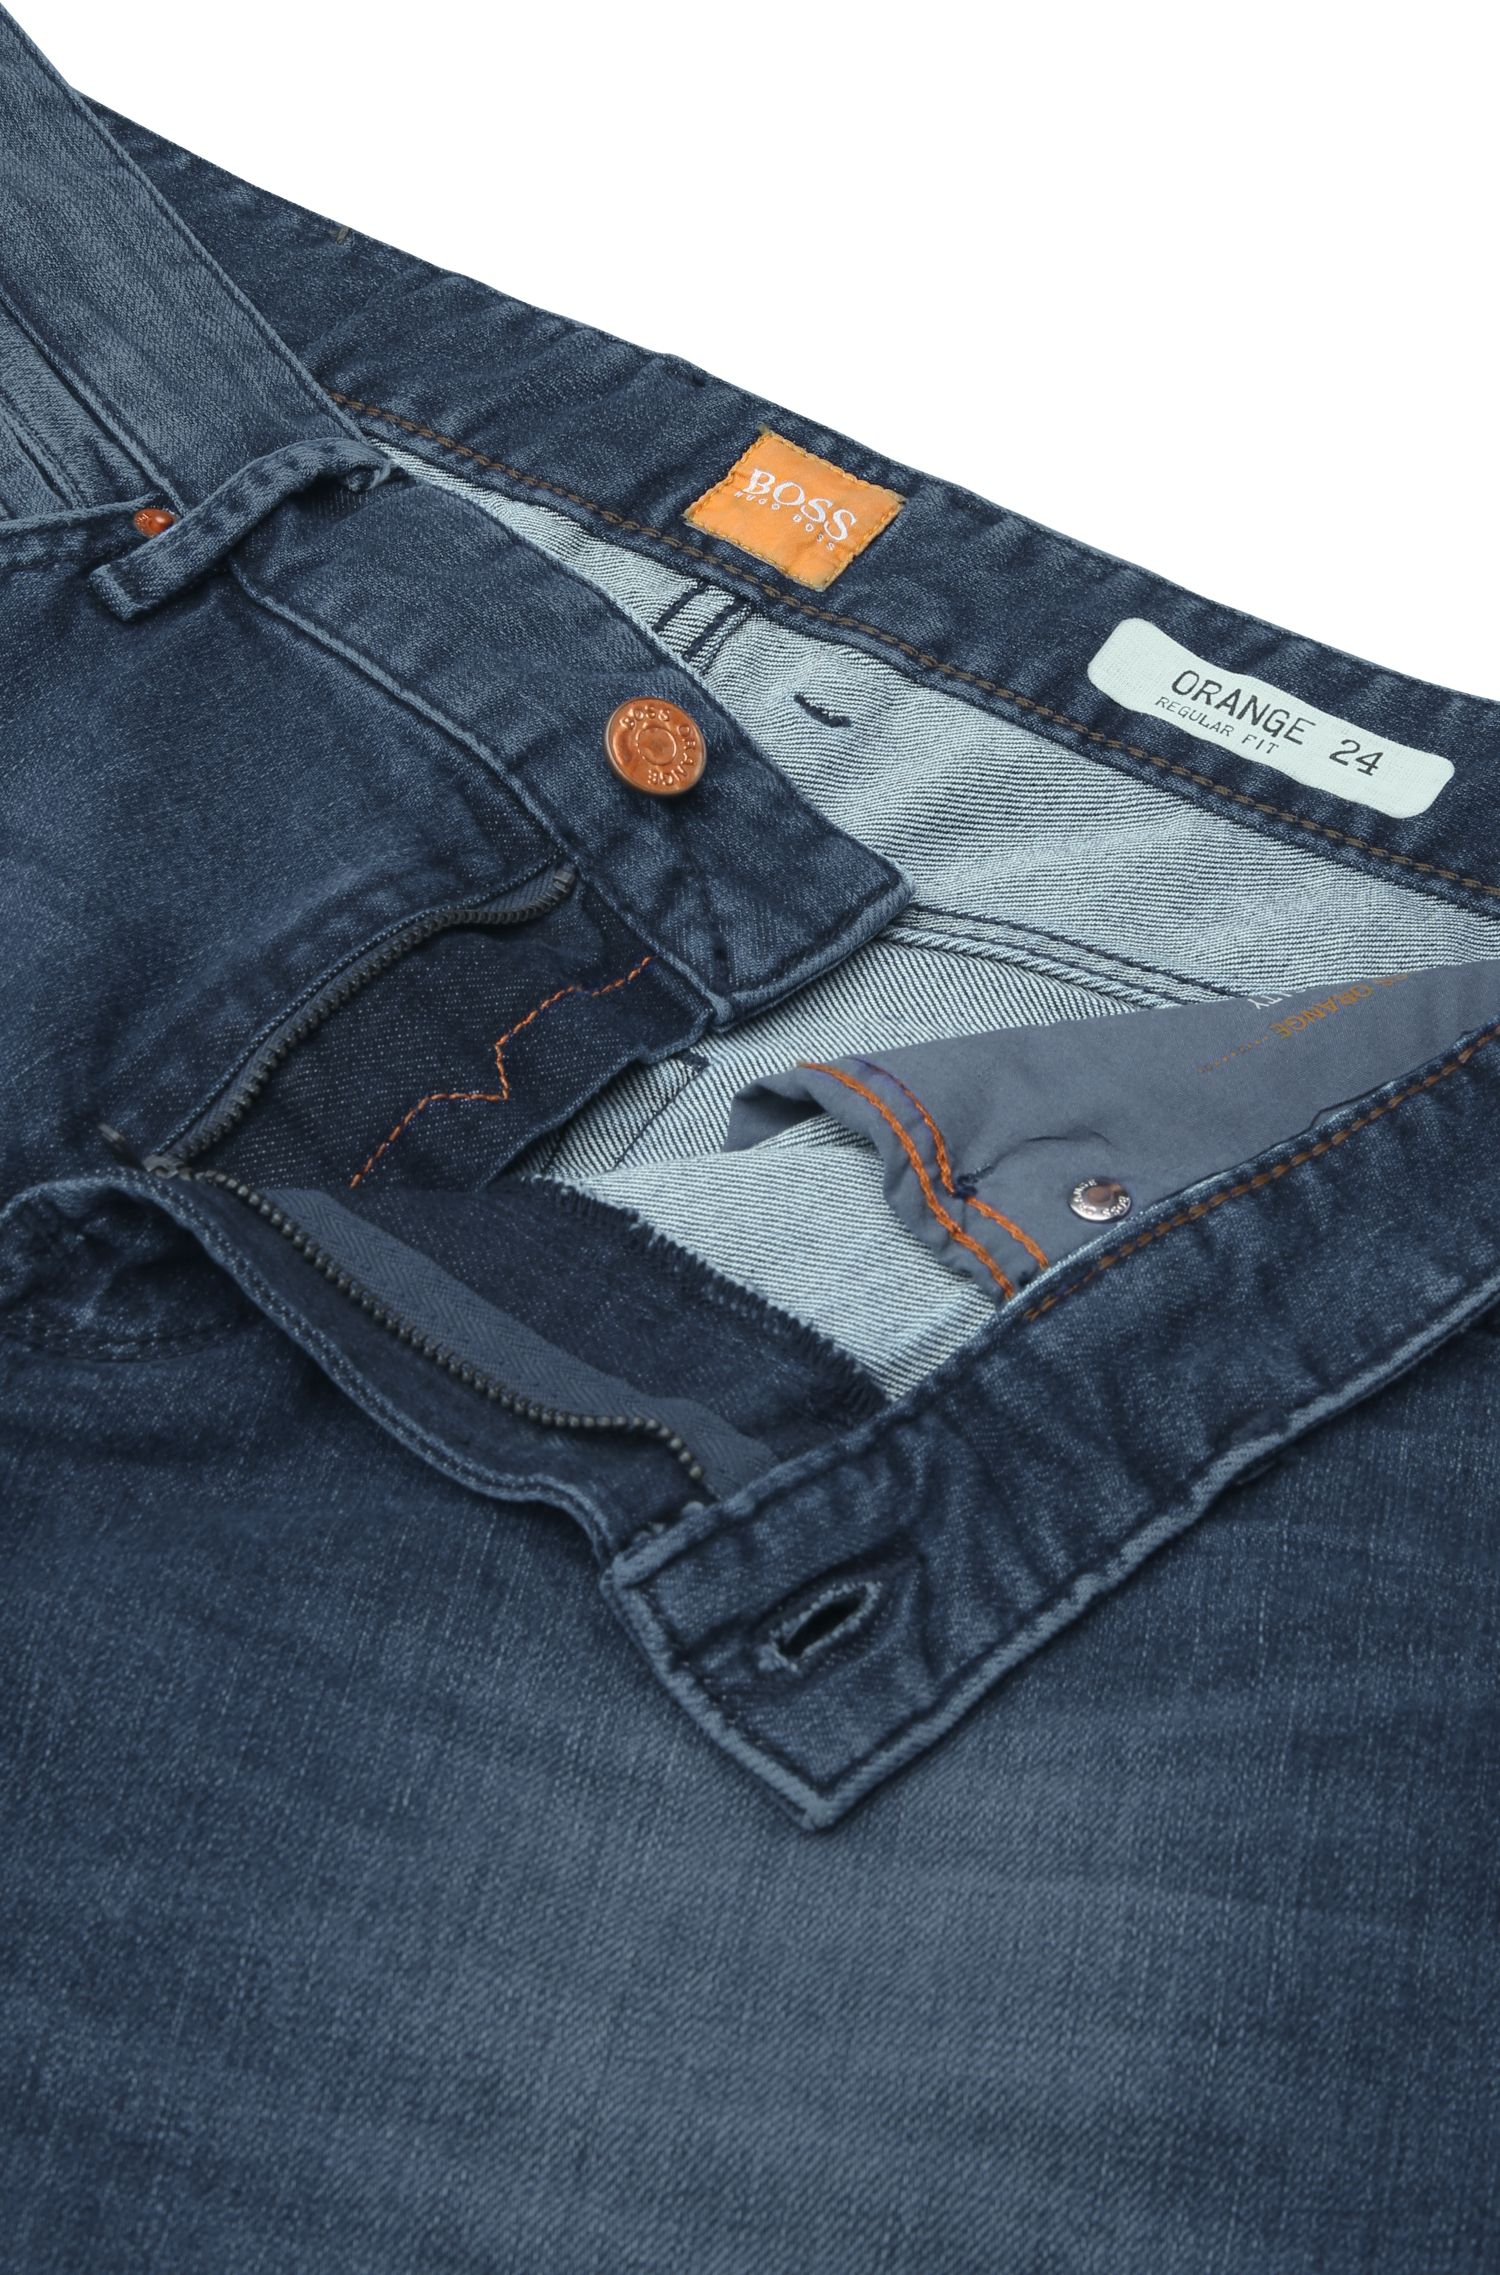 Regular-Fit Jeans aus elastischem Baumwoll-Mix in Used-Optik: ´Orange24 Barcelona`